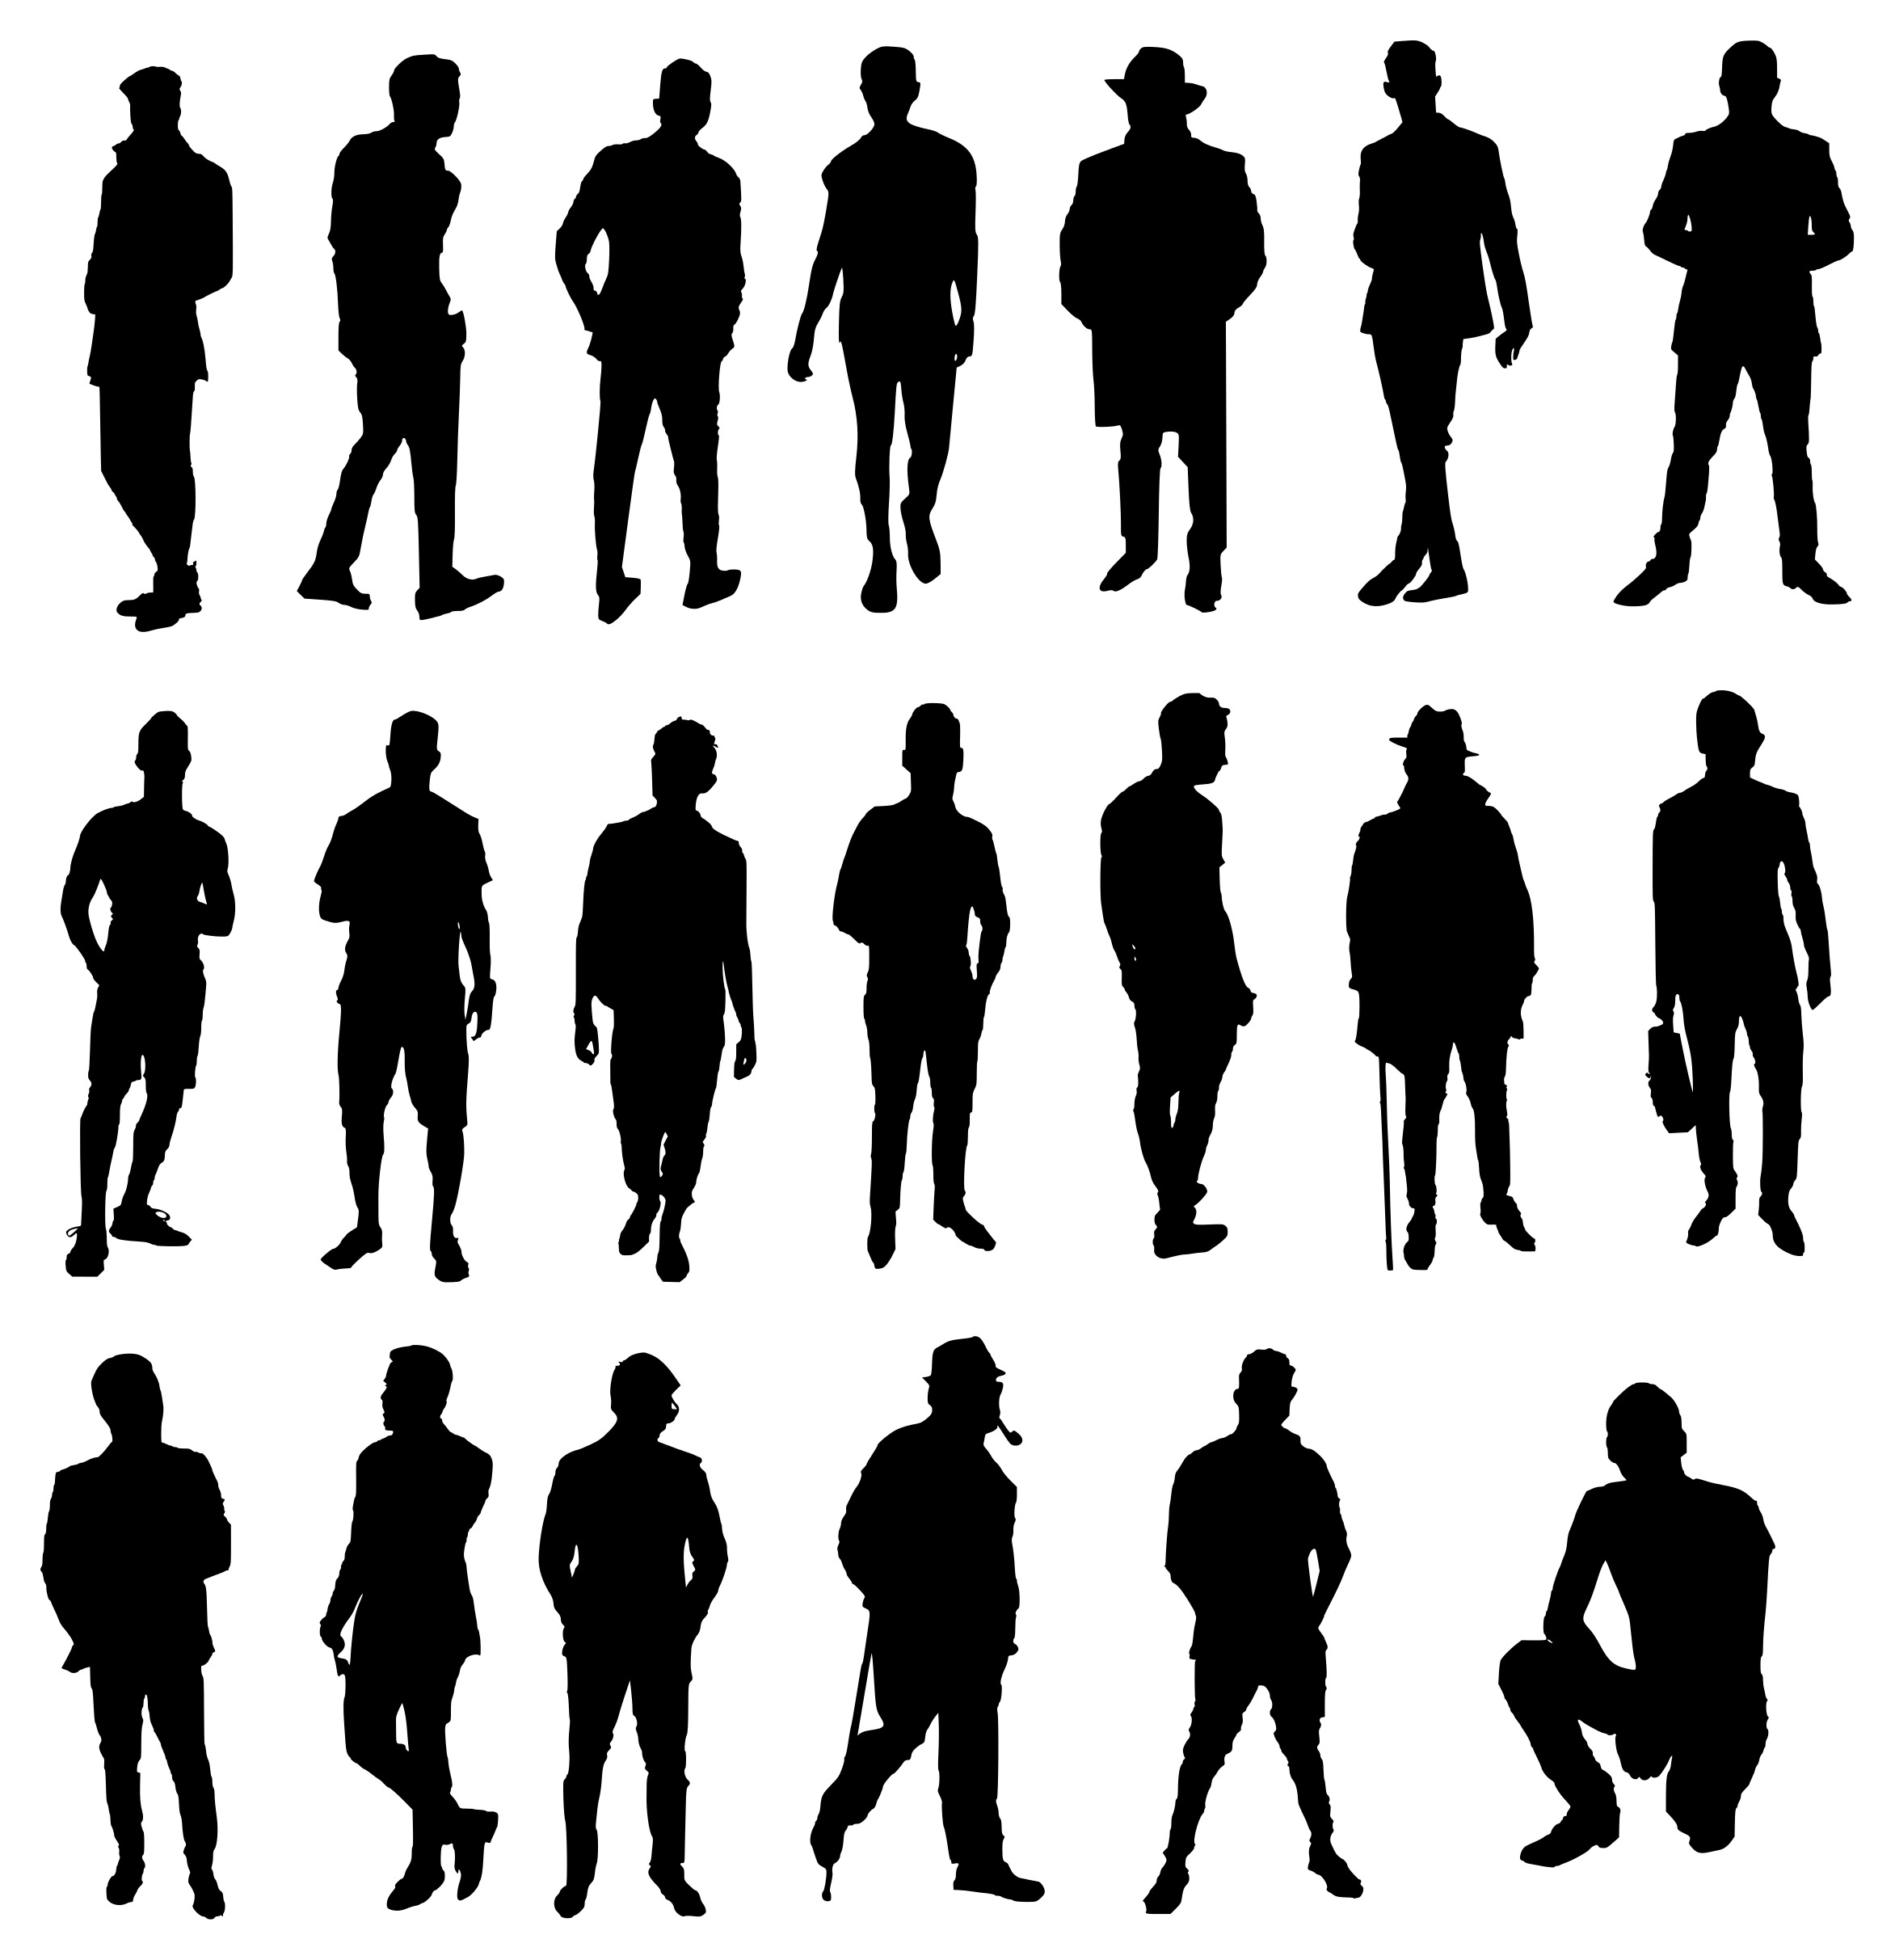 20 Man Silhouette (PNG Transparent).